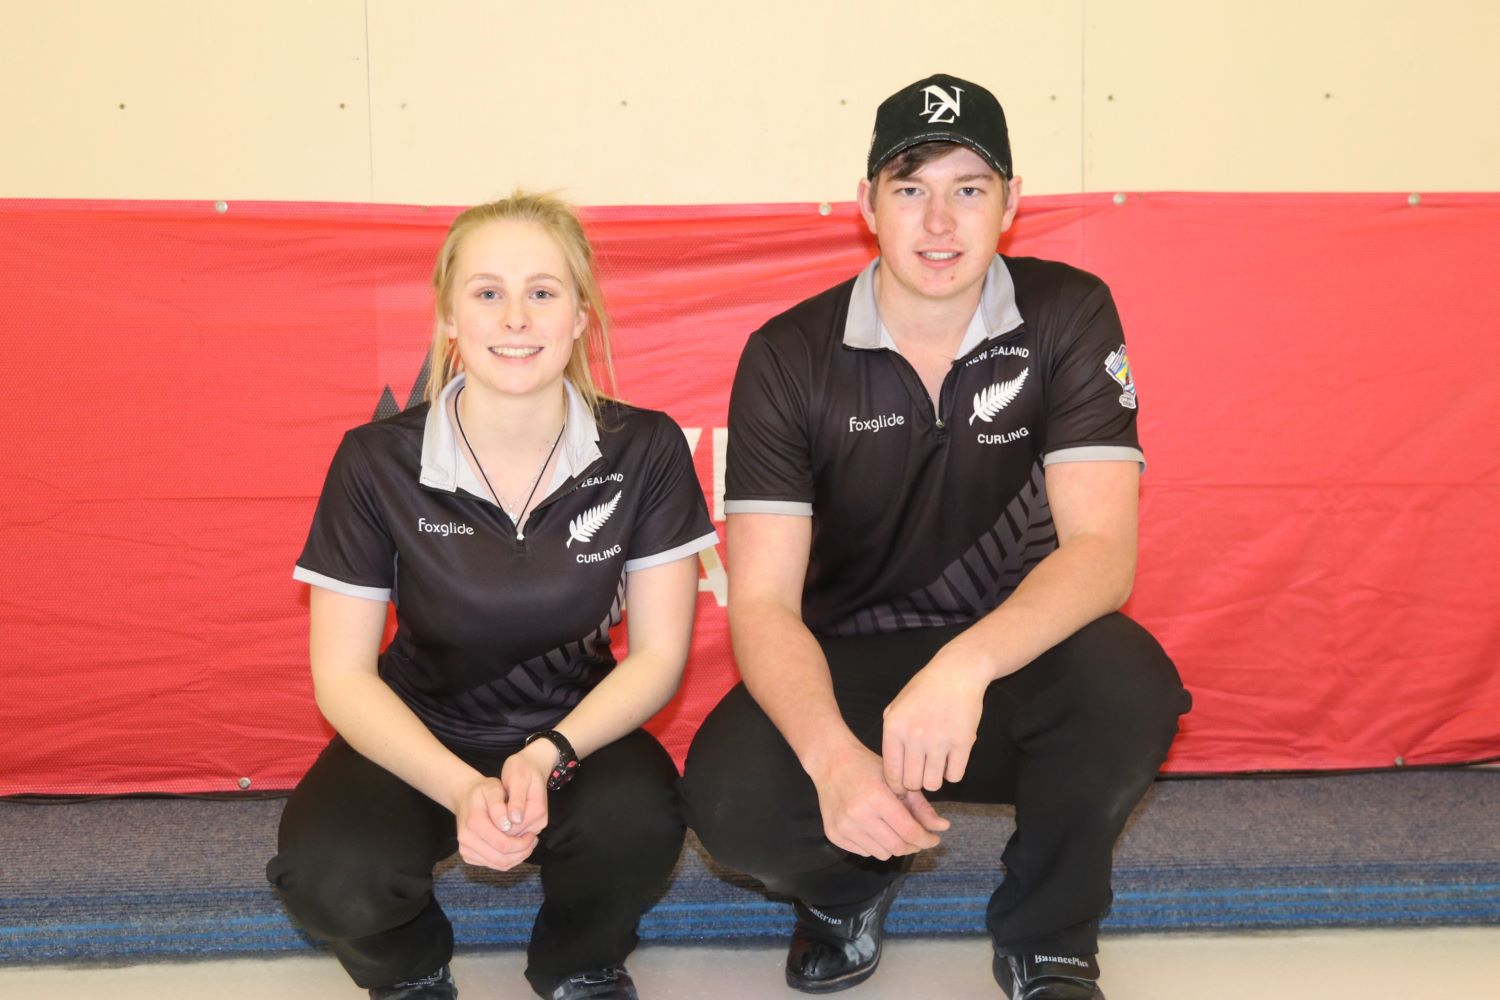 Team NZL3 - Courtney Smith and Hamish Walker